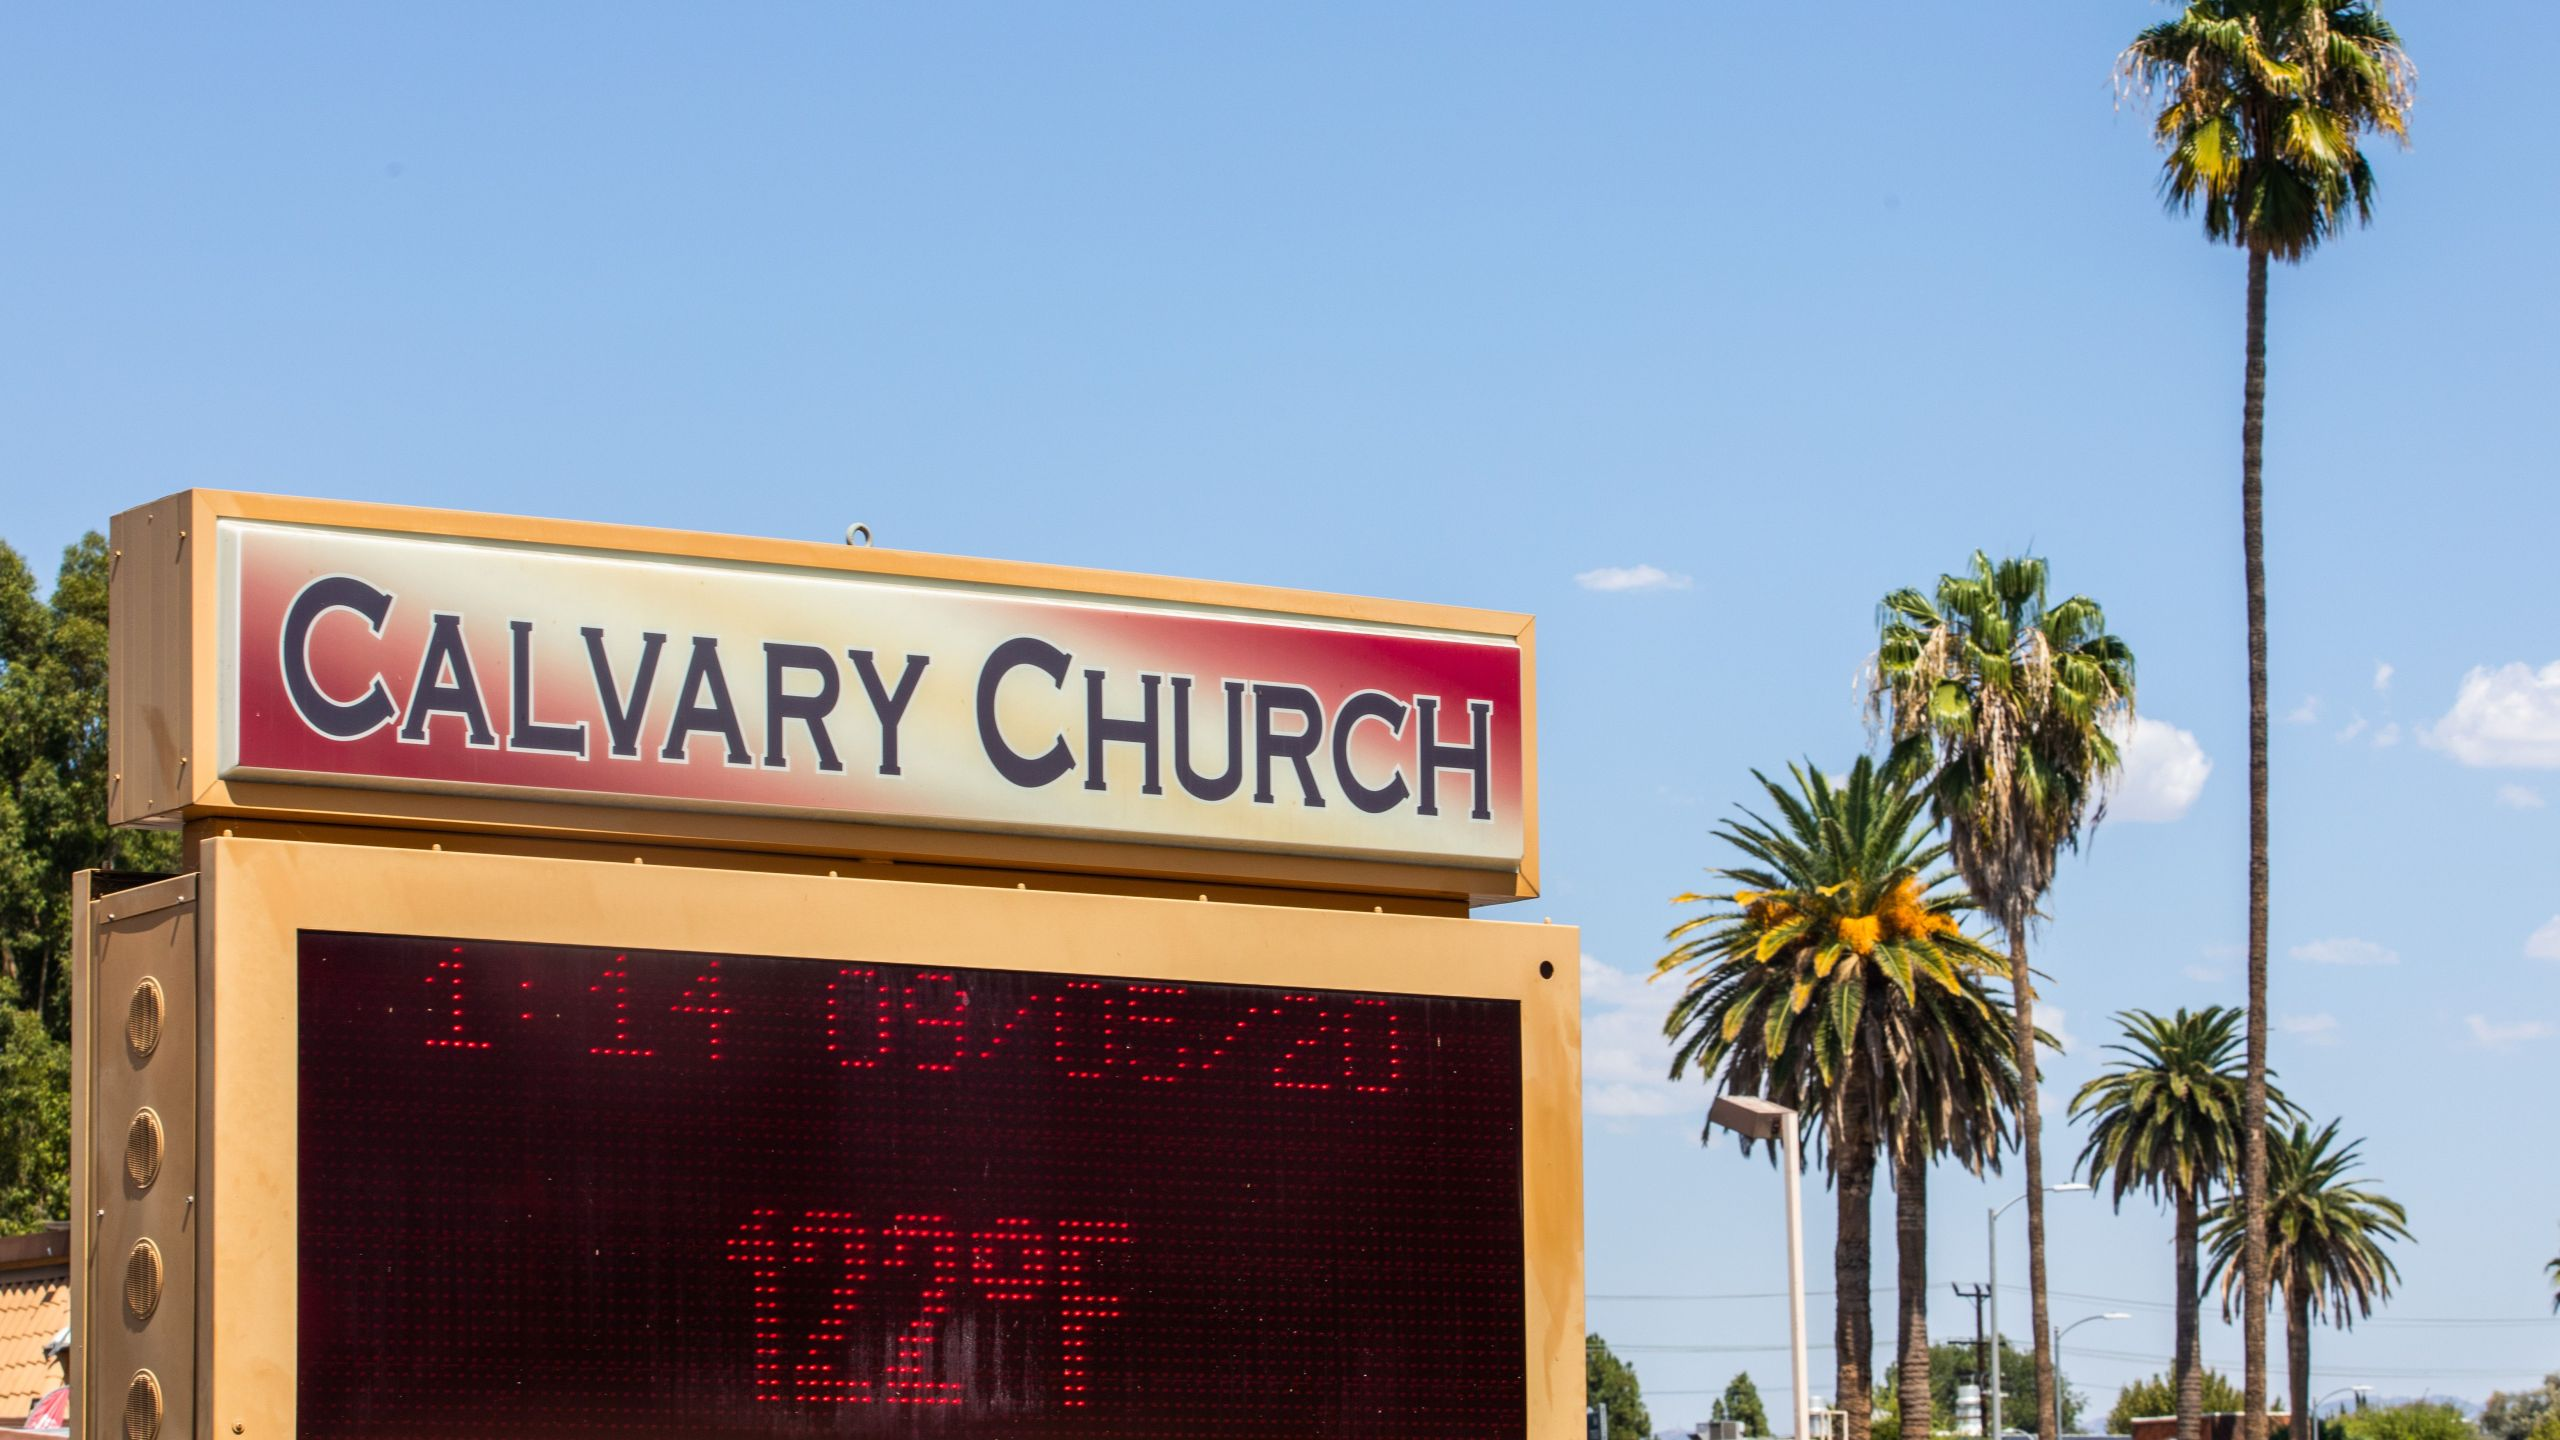 The thermometer registers 122 degrees Fahrenheit in Woodland Hills on Sept. 5, 2020. (APU GOMES/AFP via Getty Images)